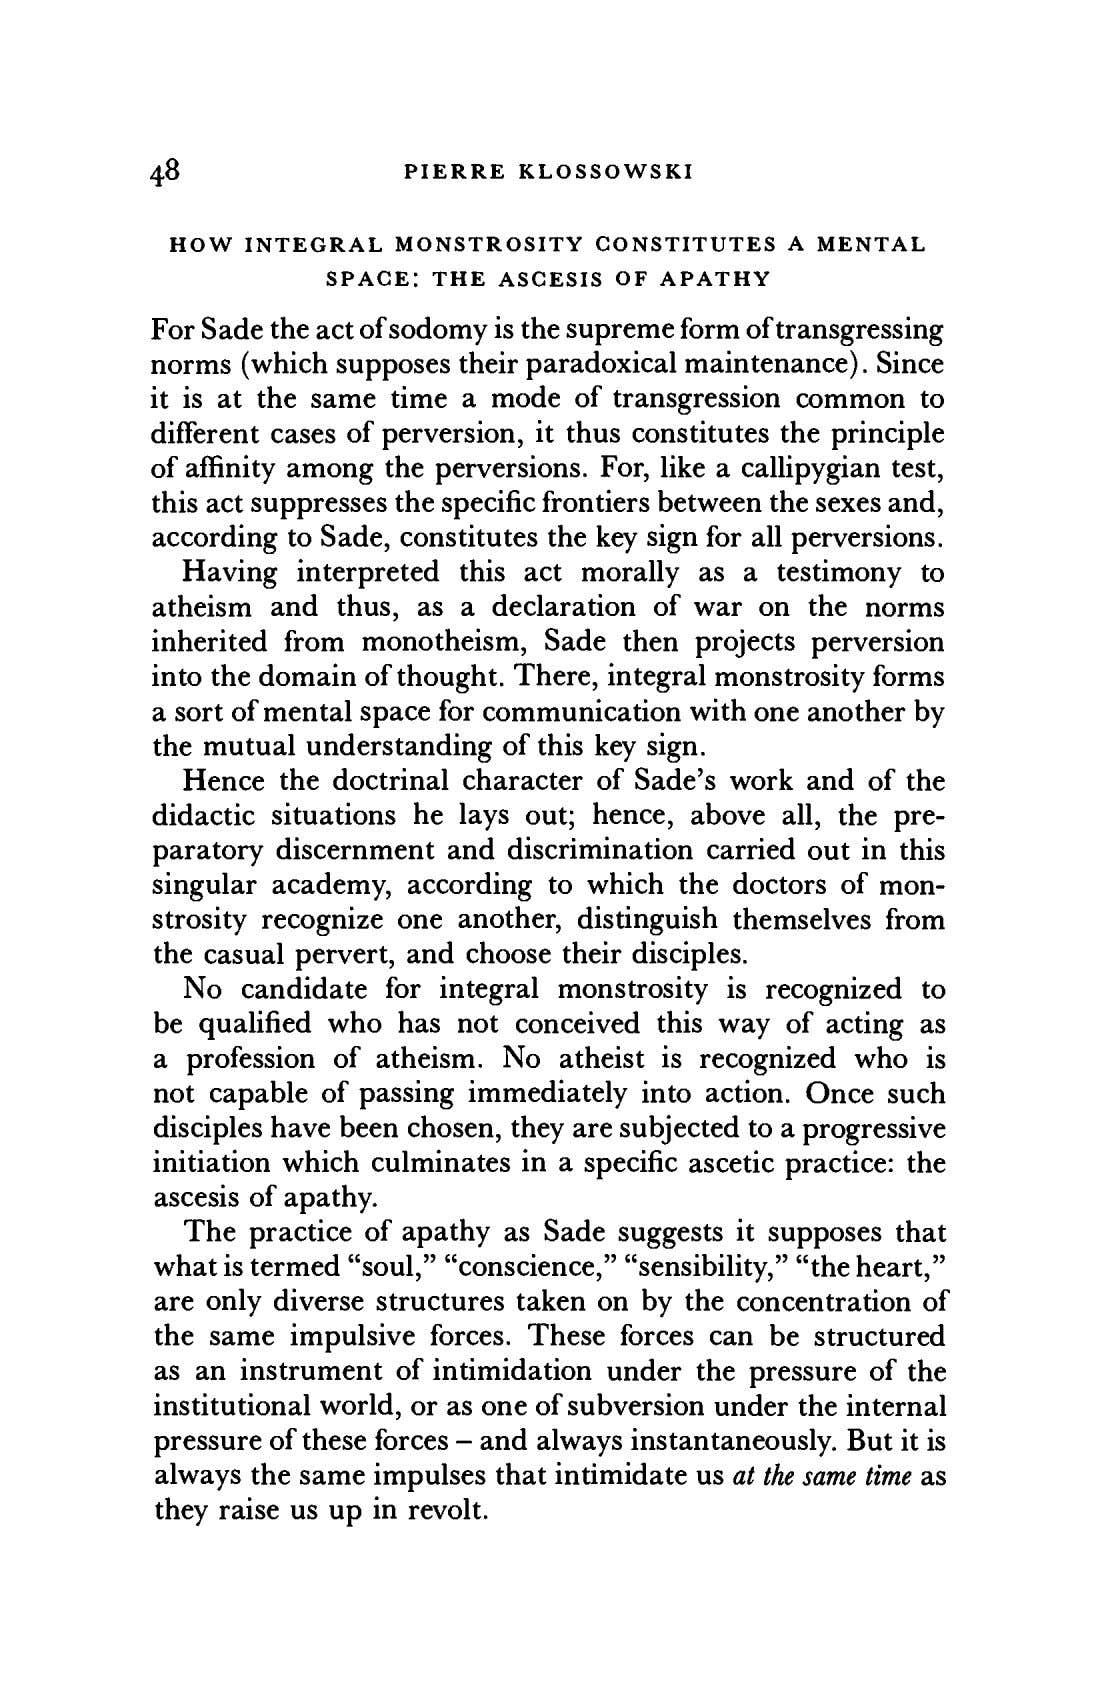 48 PIERRE KLOSSOWSKI HOW INTEGRAL MONSTROSITY CONSTITUTES A MENTAL SPACE: THE ASCESIS OF APATHY For